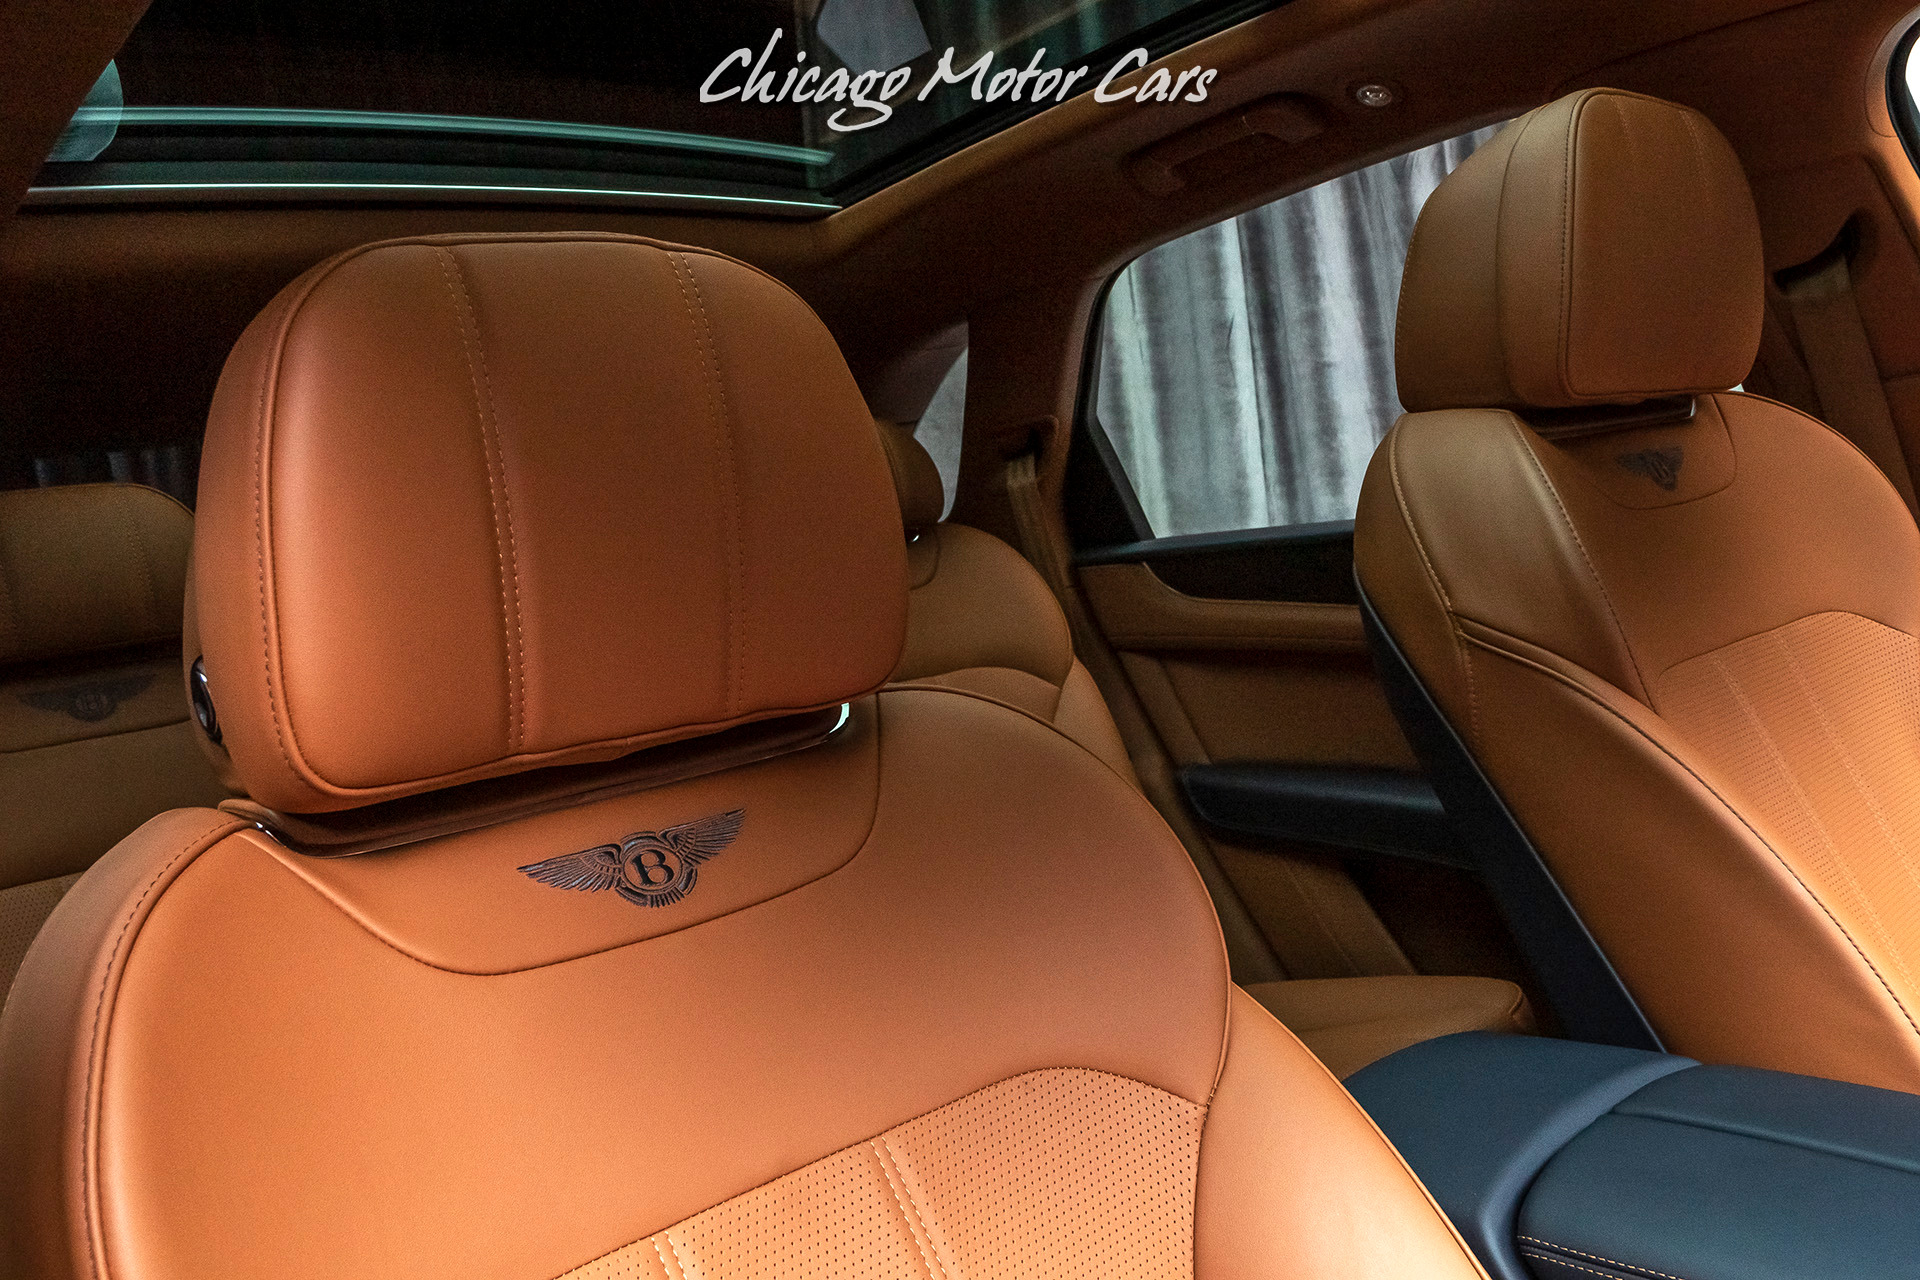 Used 2019 Bentley Bentayga V8 Suv Touring Specification For Sale Special Pricing Chicago Motor Cars Stock 16922